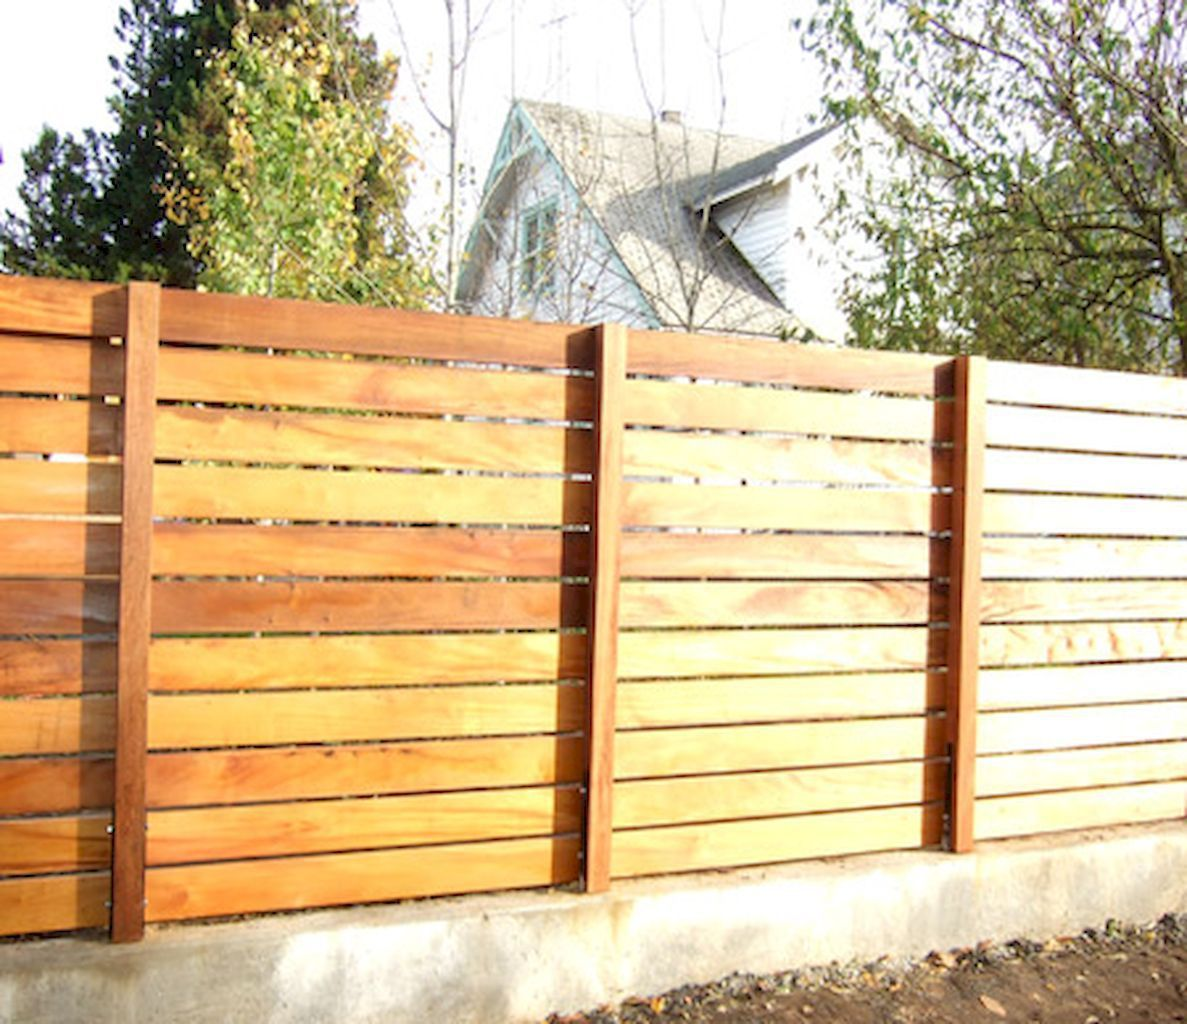 Affordable backyard privacy fence design ideas (35) | Home And ...